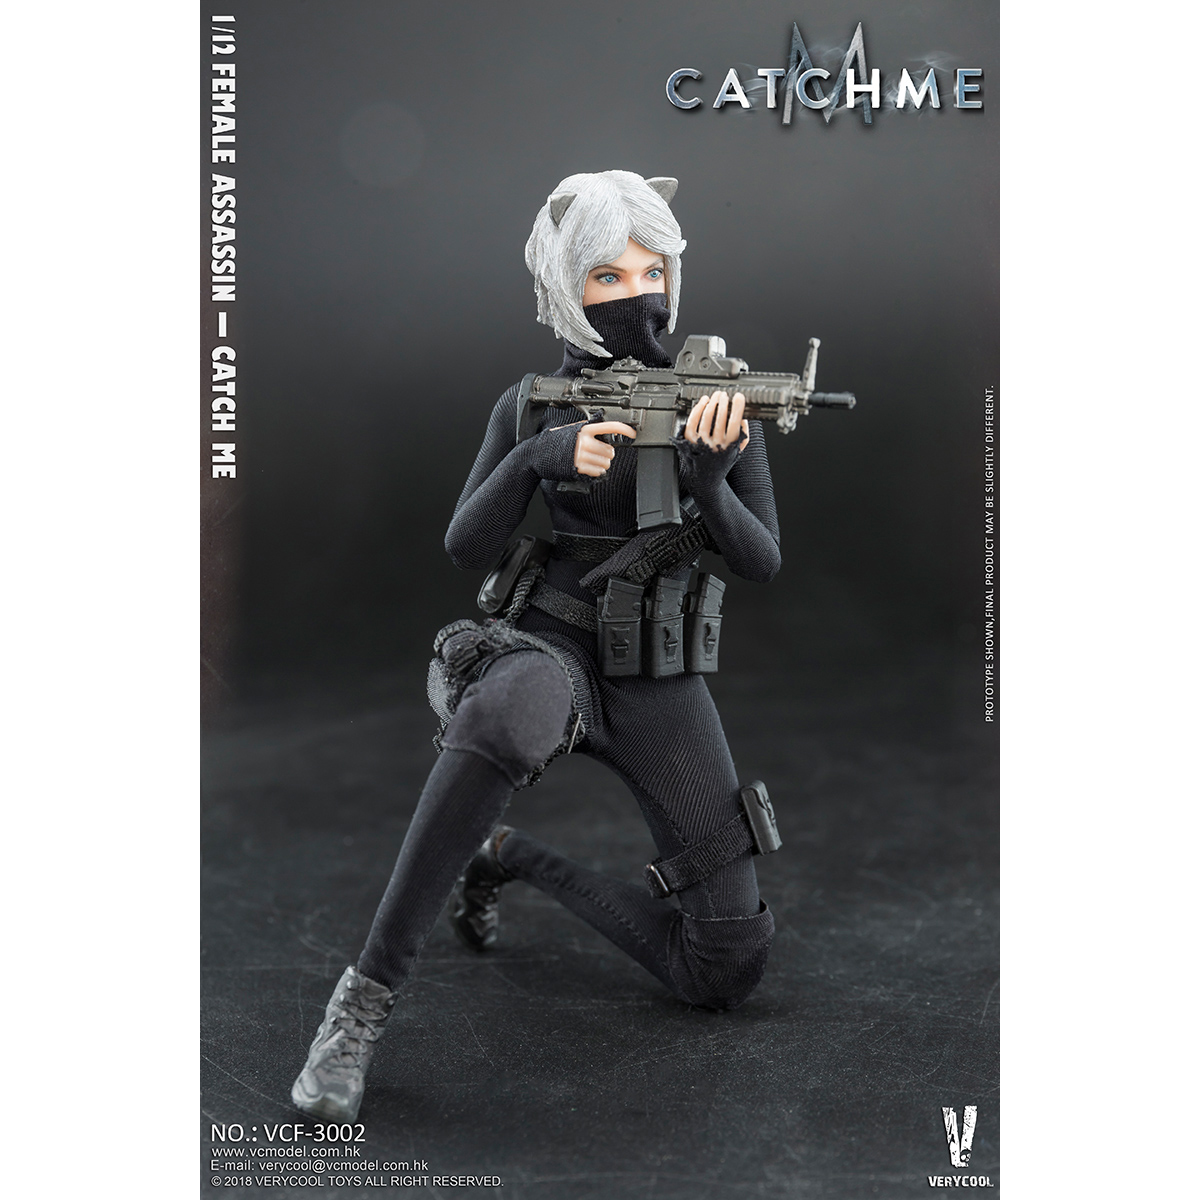 VERYCOOL VCF-3001 1//12 Palm Female Assassin Catwoman Catch Me Figure New